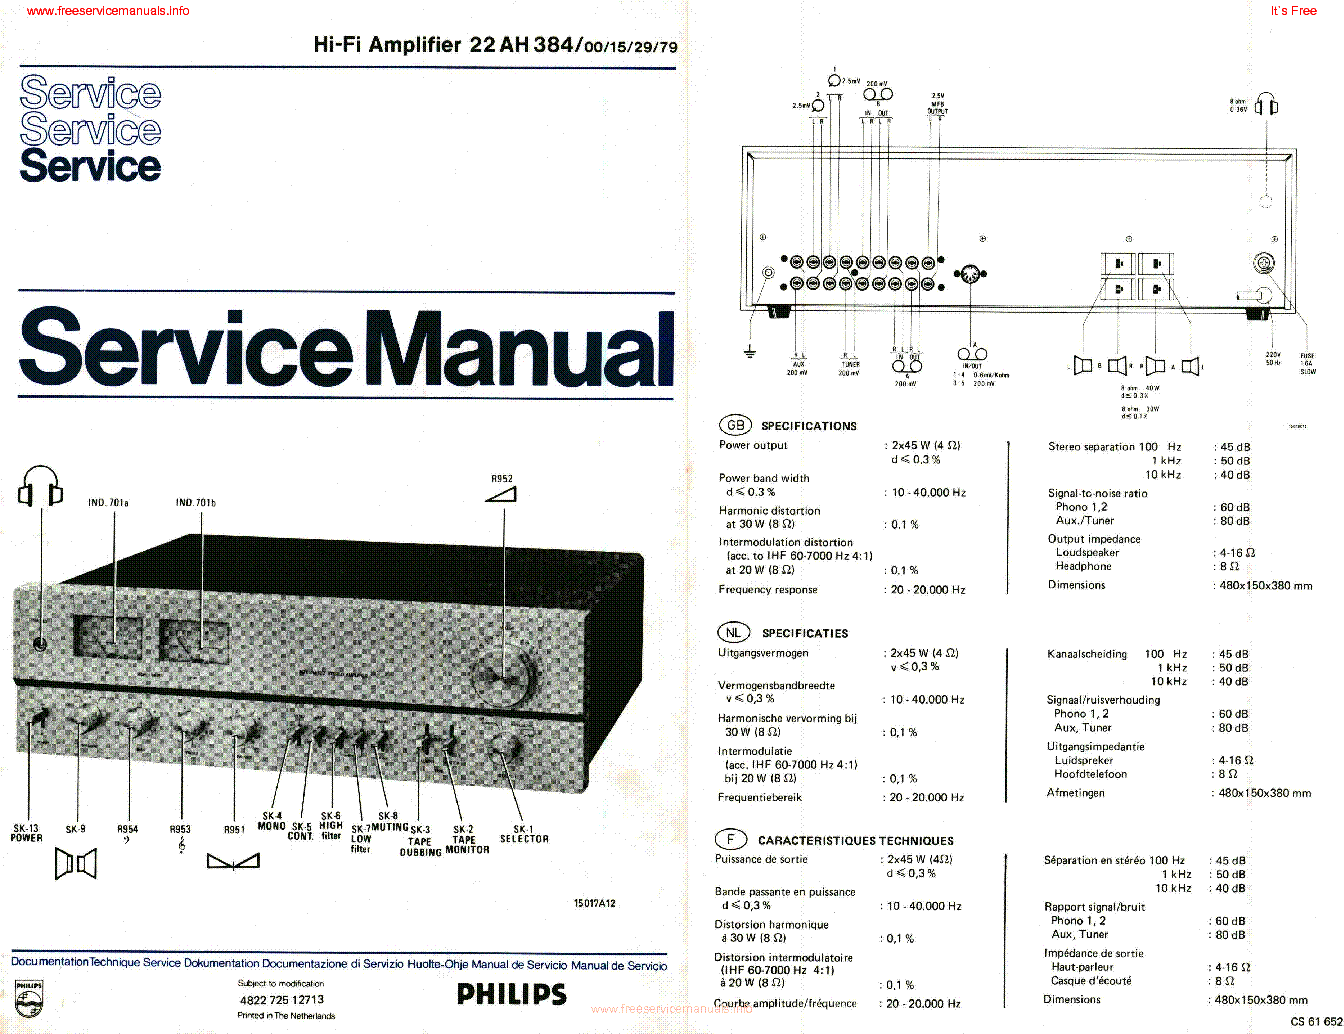 PHILIPS 22AH384 SCH Service Manual download, schematics